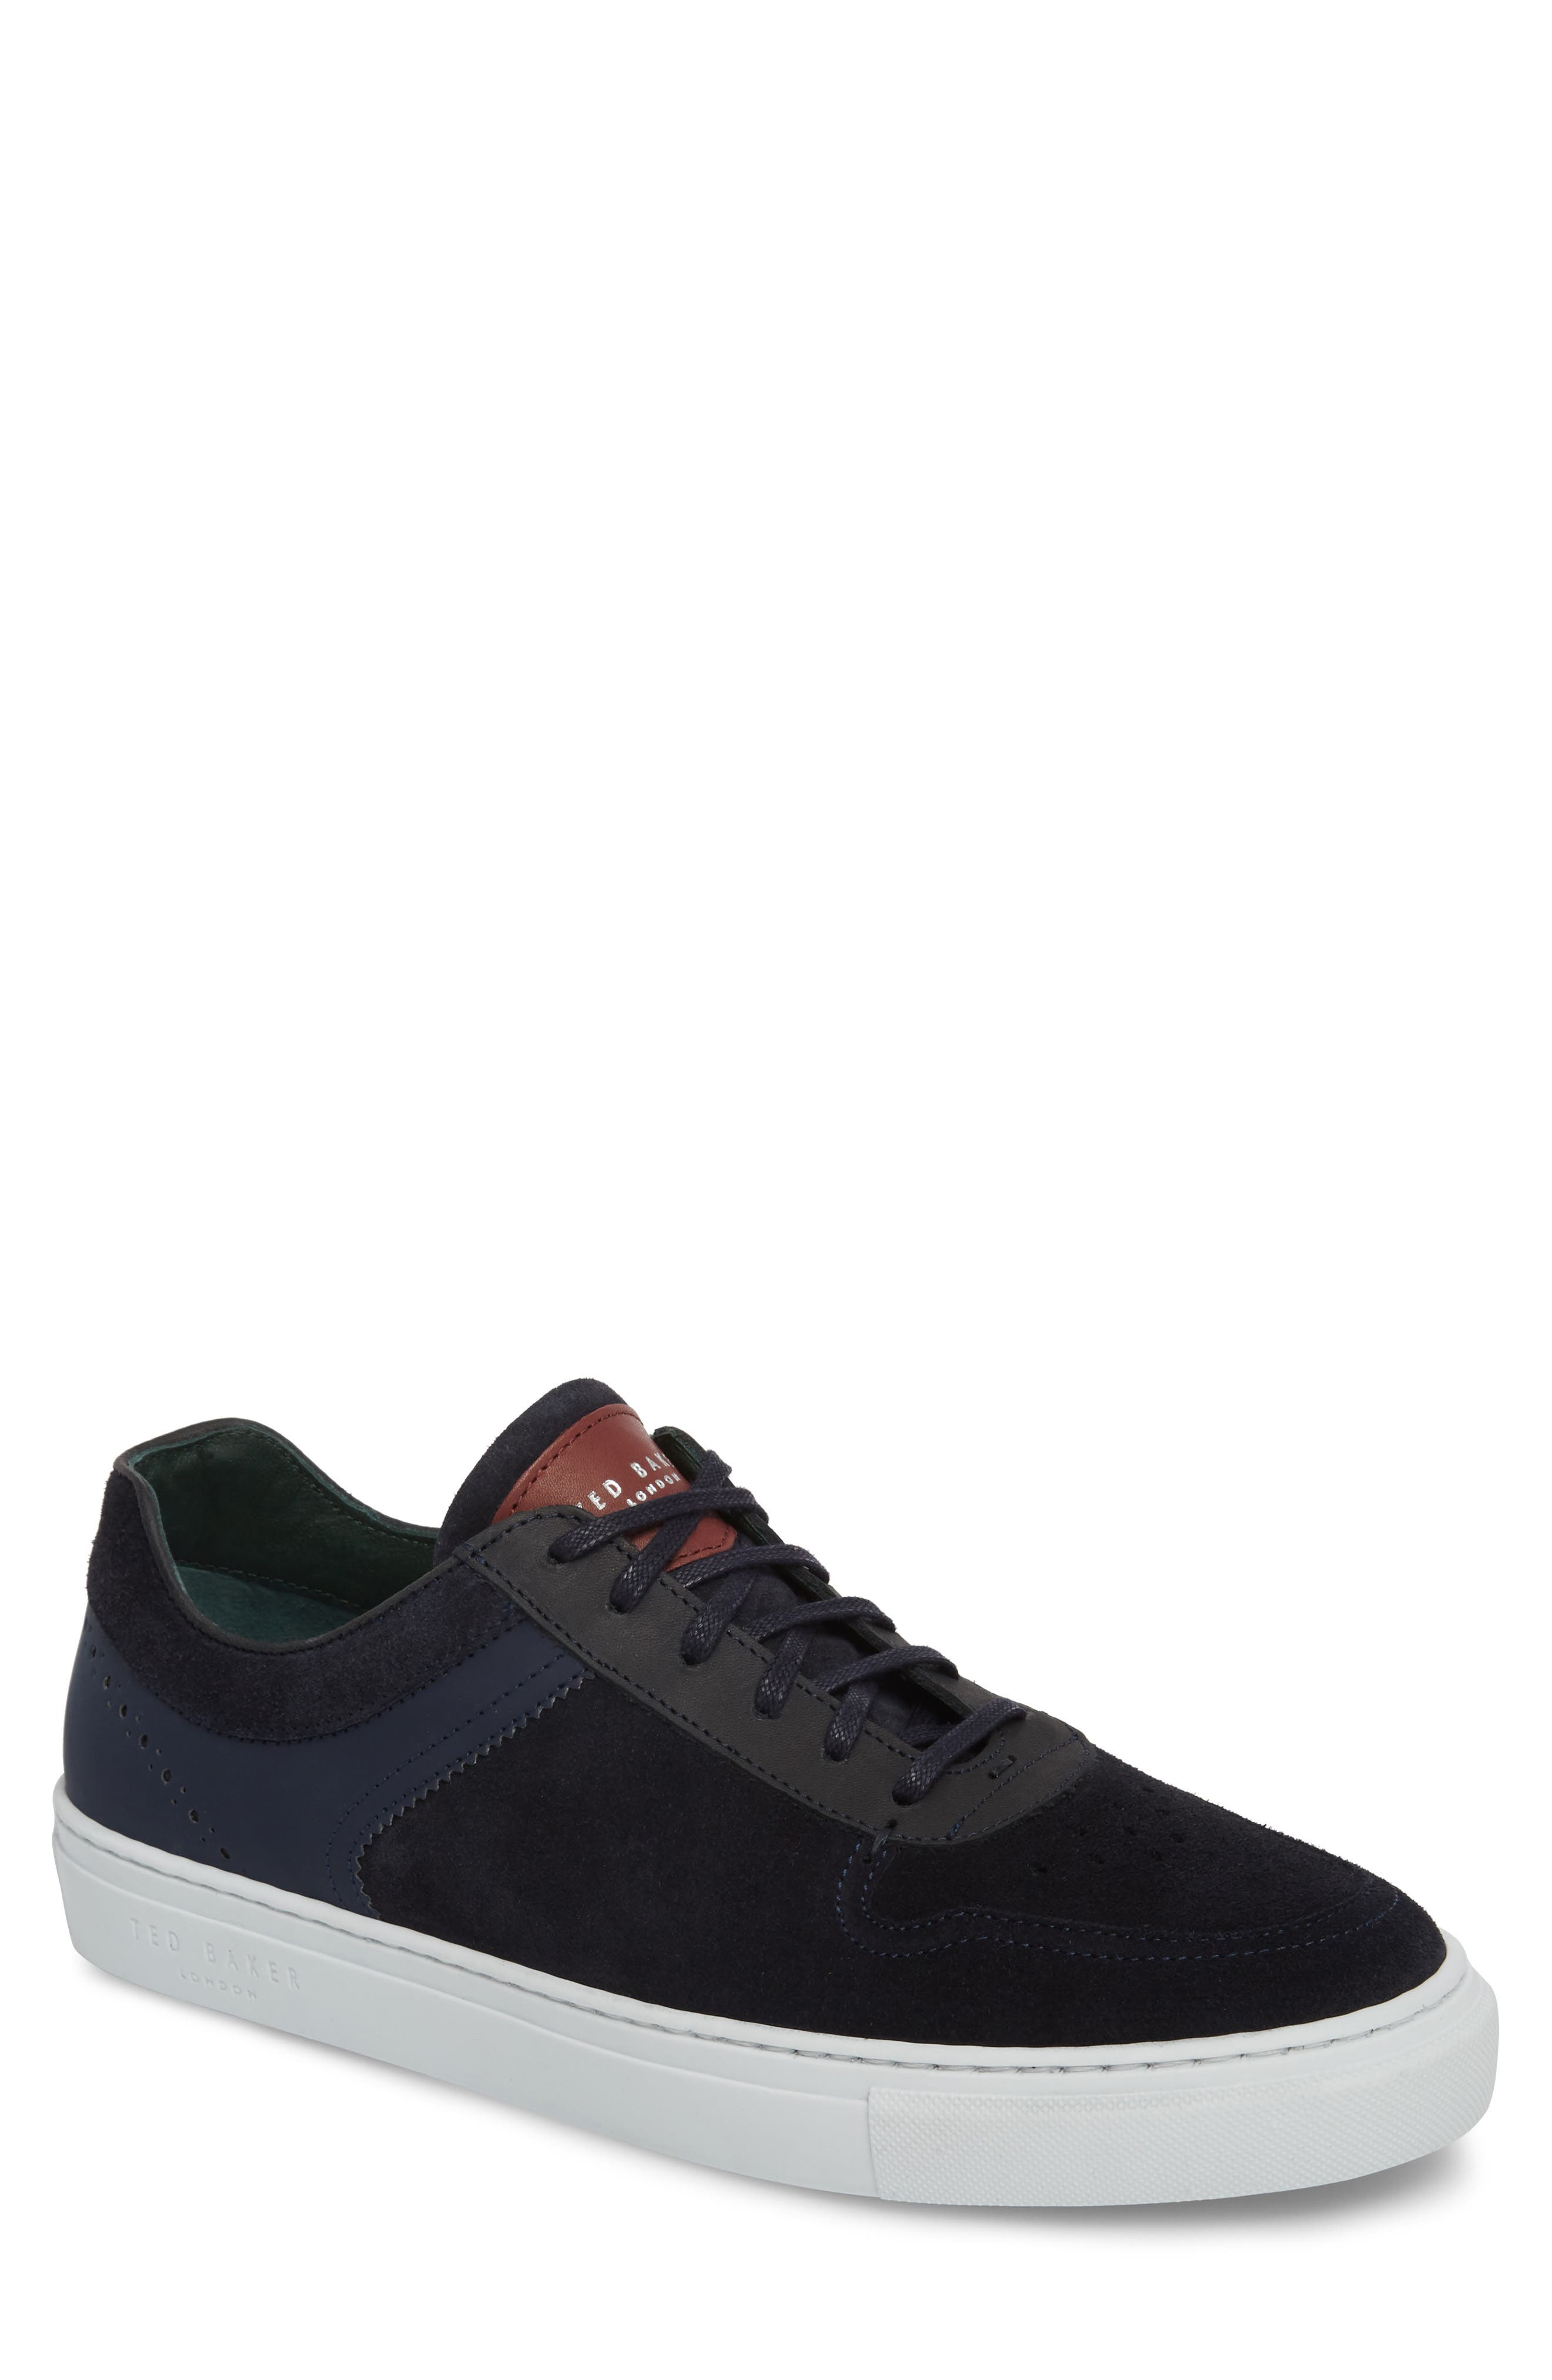 Burall Sneaker,                             Main thumbnail 1, color,                             Dark Blue Suede/ Textile